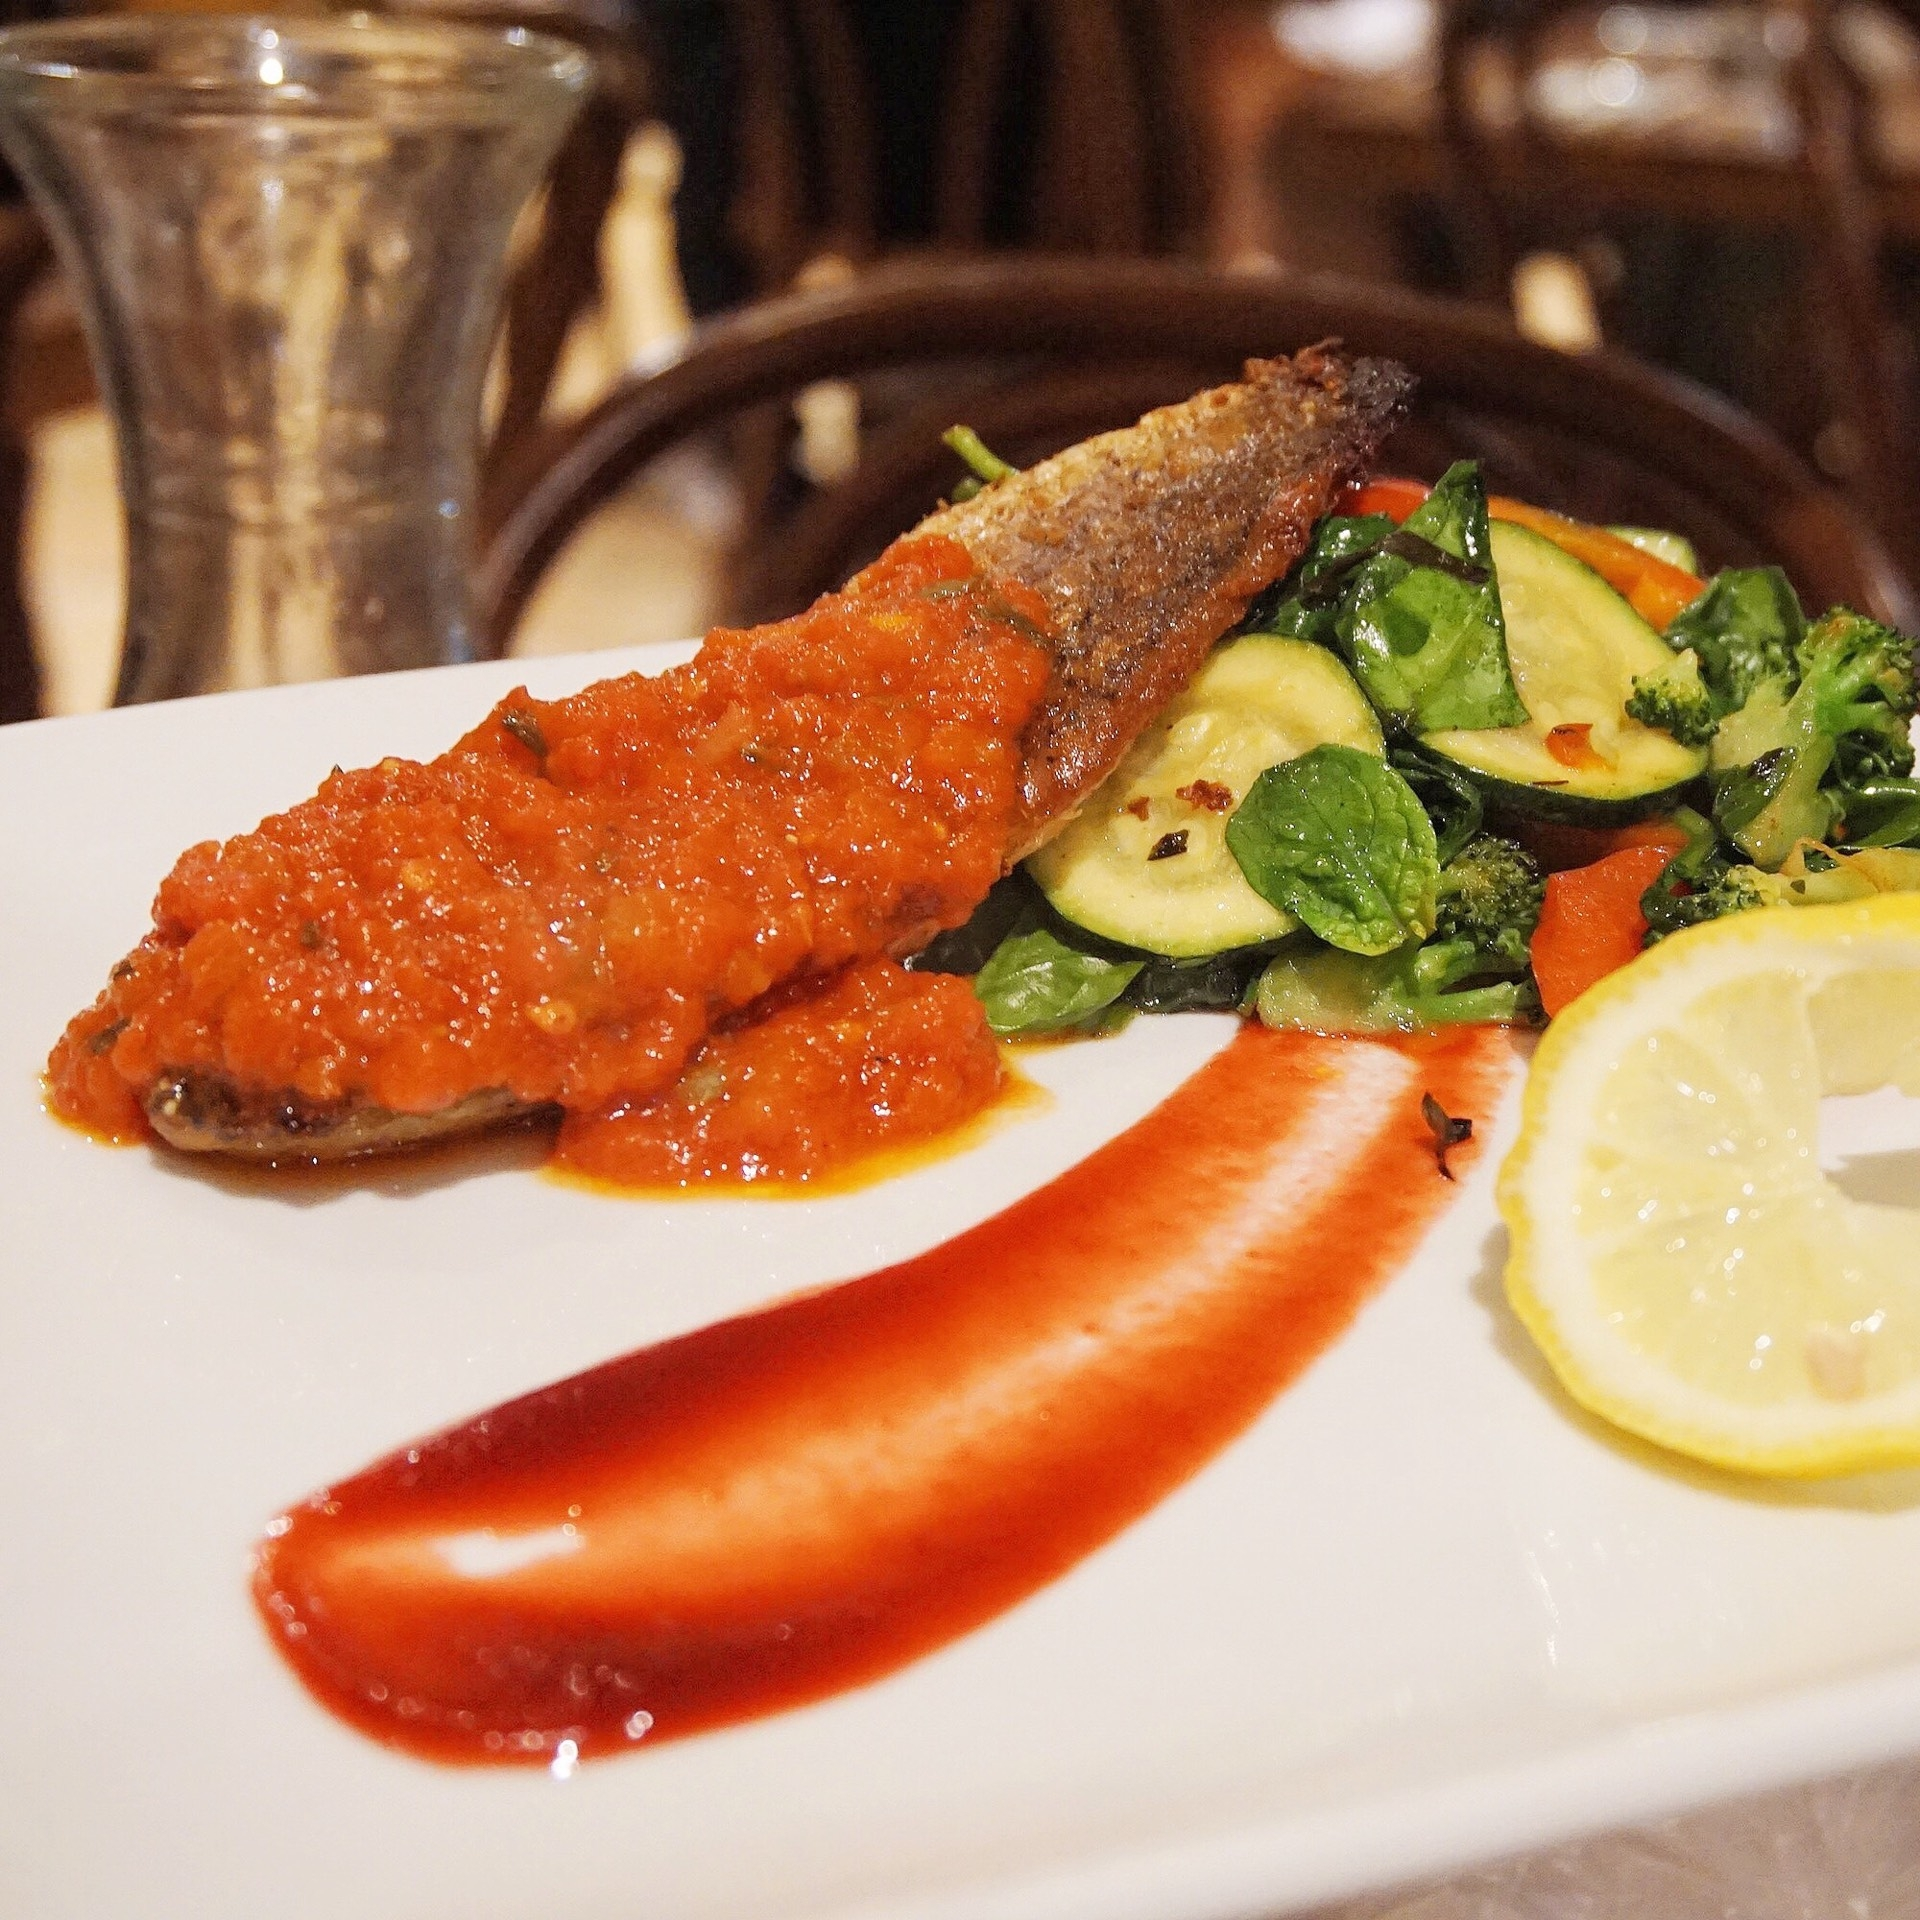 Fried Fish with Tomato Chili Sauce